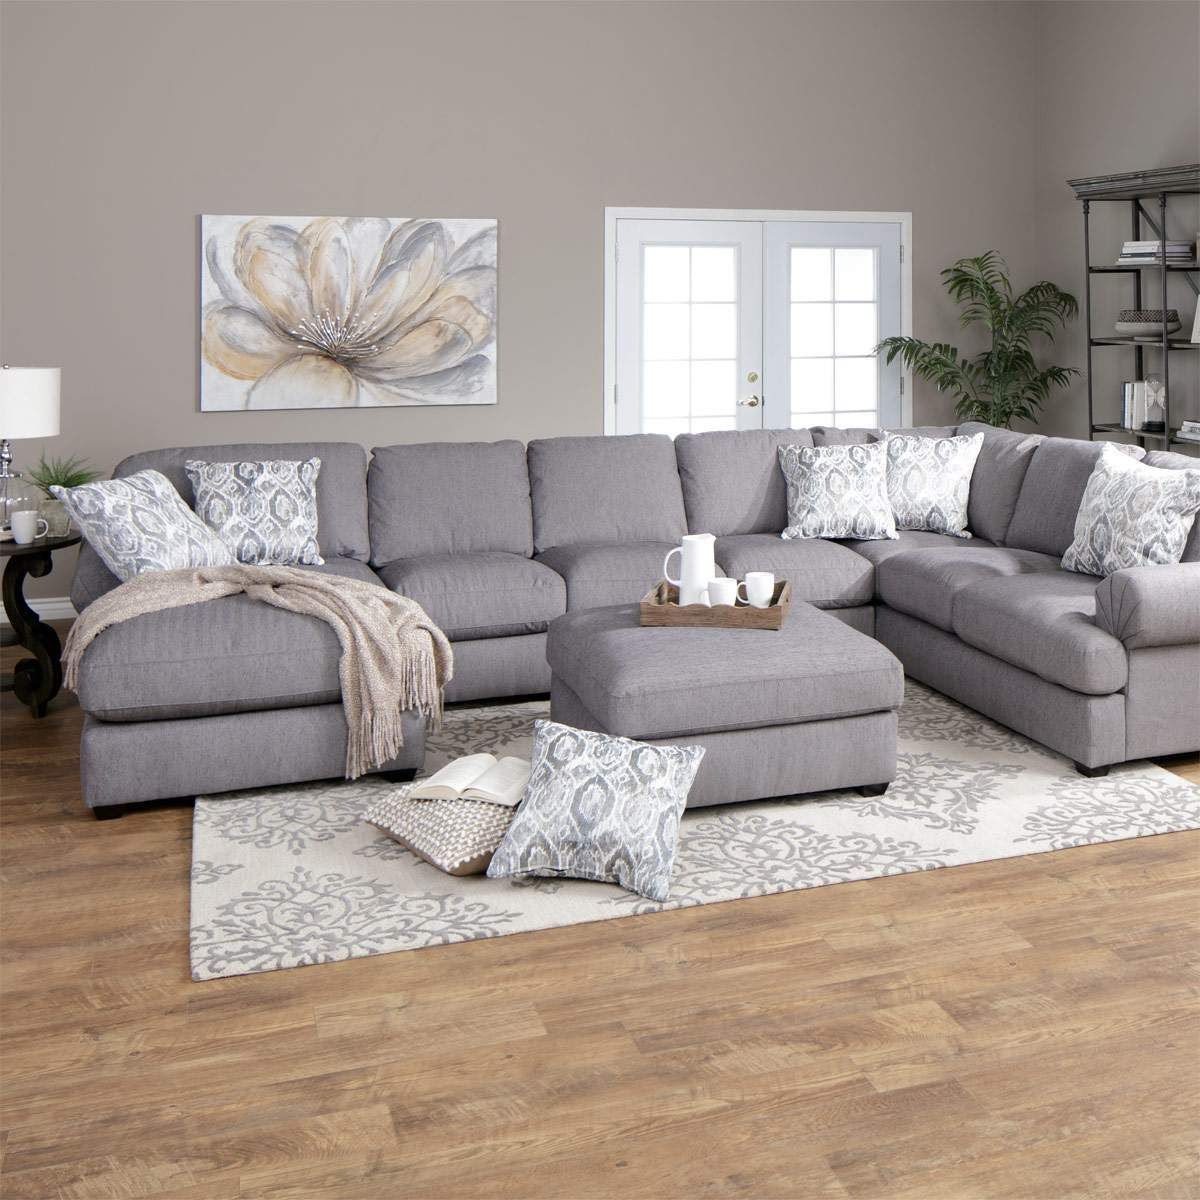 3 Piece Grey Overstuffed Sectional Sofa Raf W Laf Chaise Jerome S In 2020 Jerome S Furniture Living Room Grey Living Room Decor Neutral #overstuffed #living #room #furniture